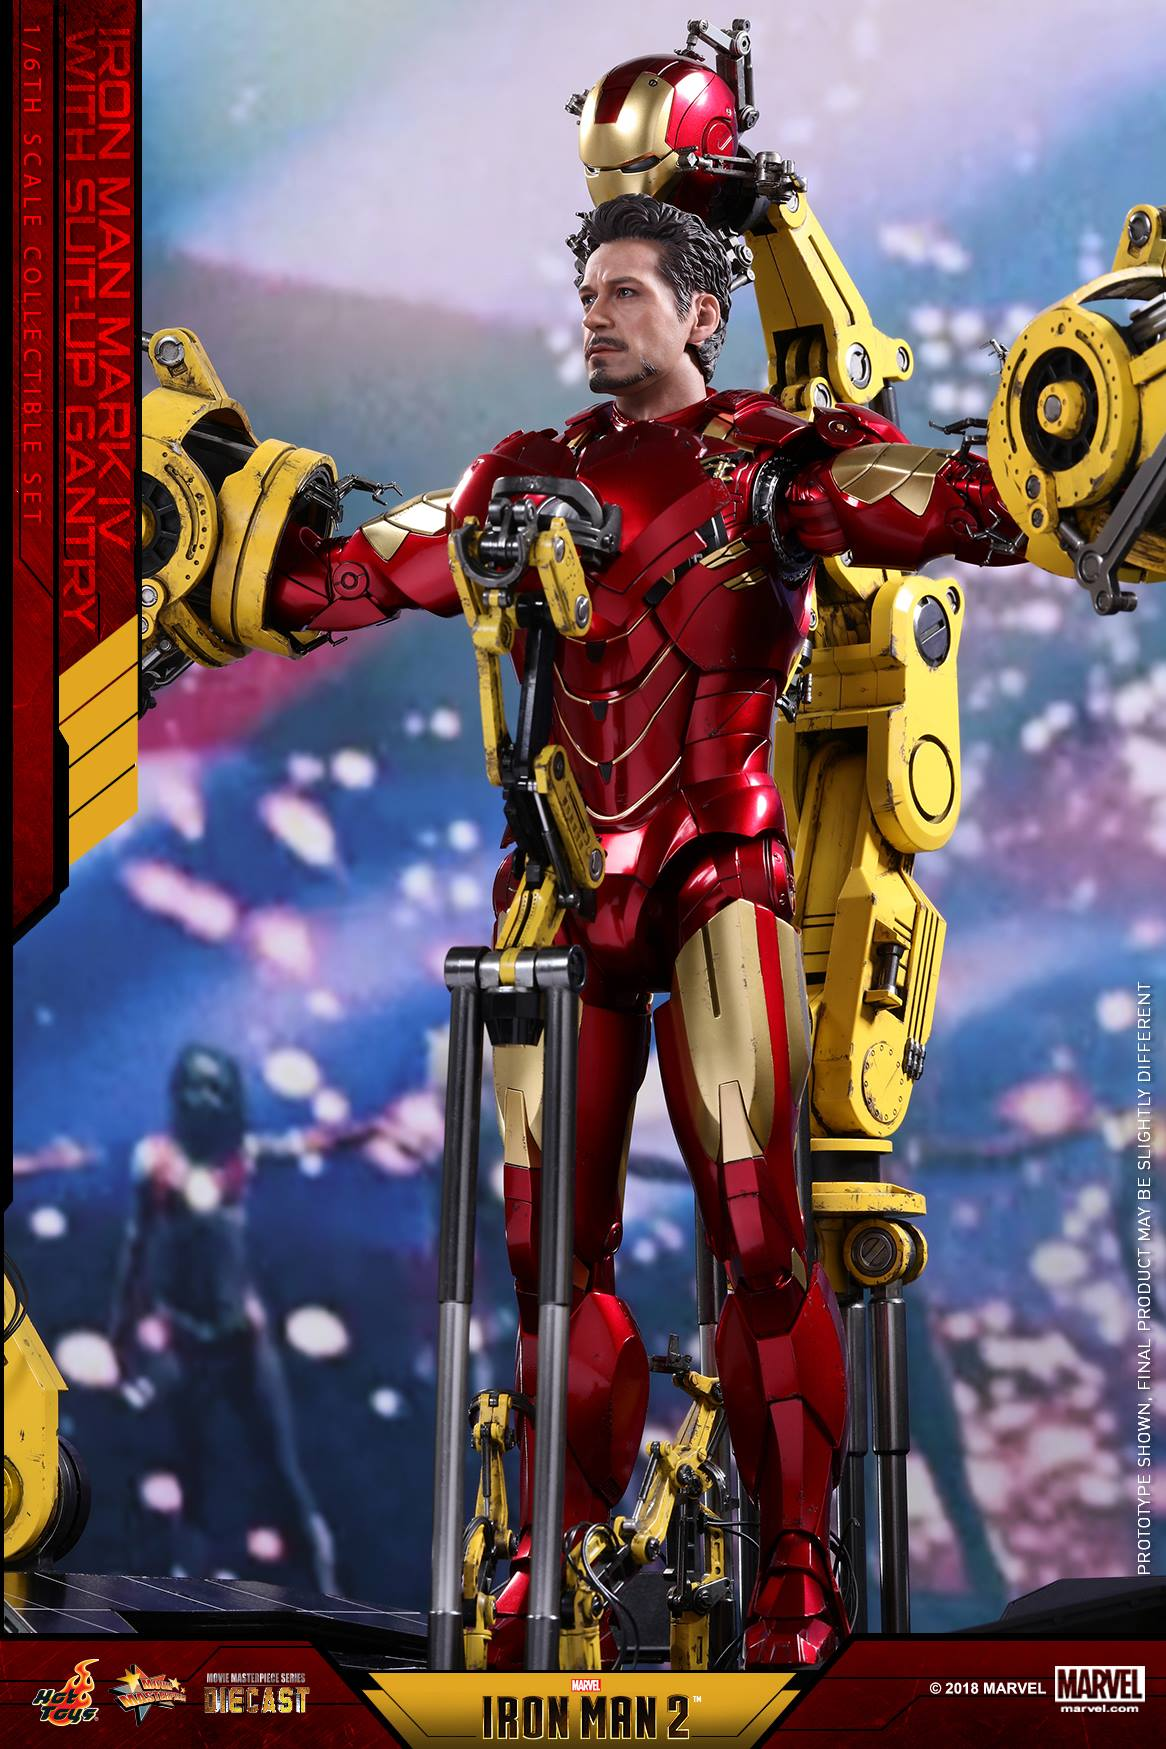 Hot Toys - MMS462D22 - Iron Man 2 - Iron Man Mark IV with Suit-Up Gantry